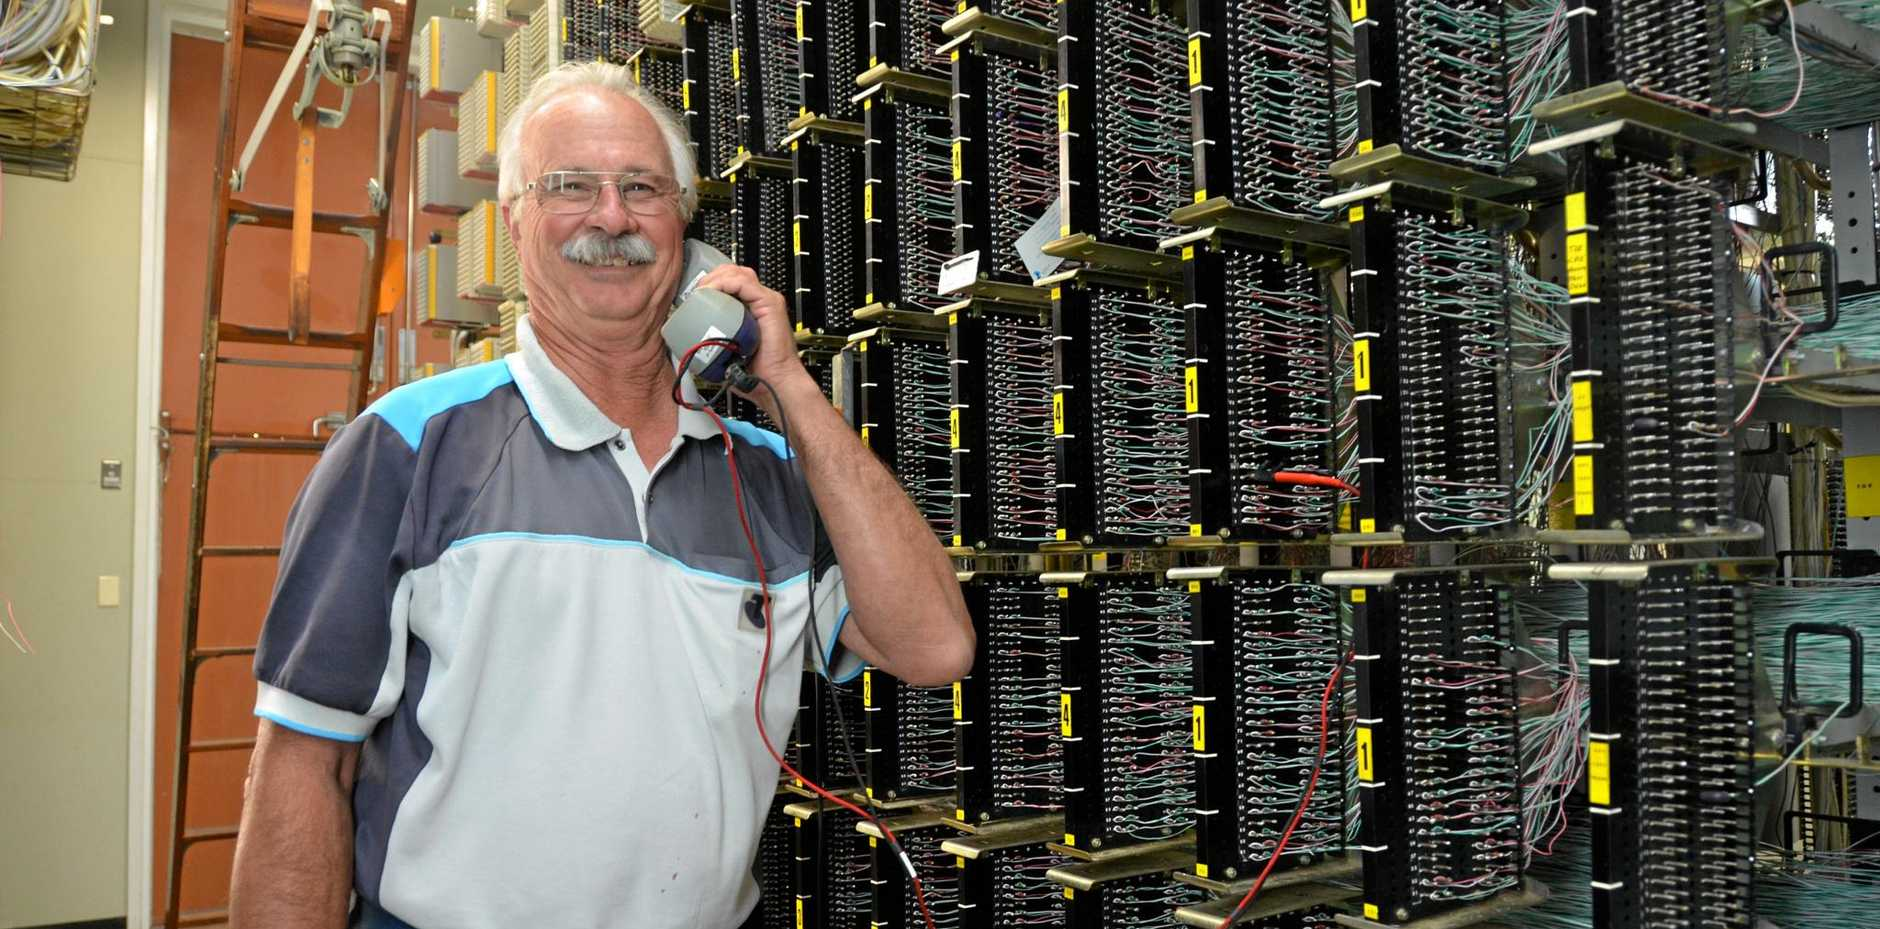 Nanango man celebrates 50 years at Telstra | South Burnett Times